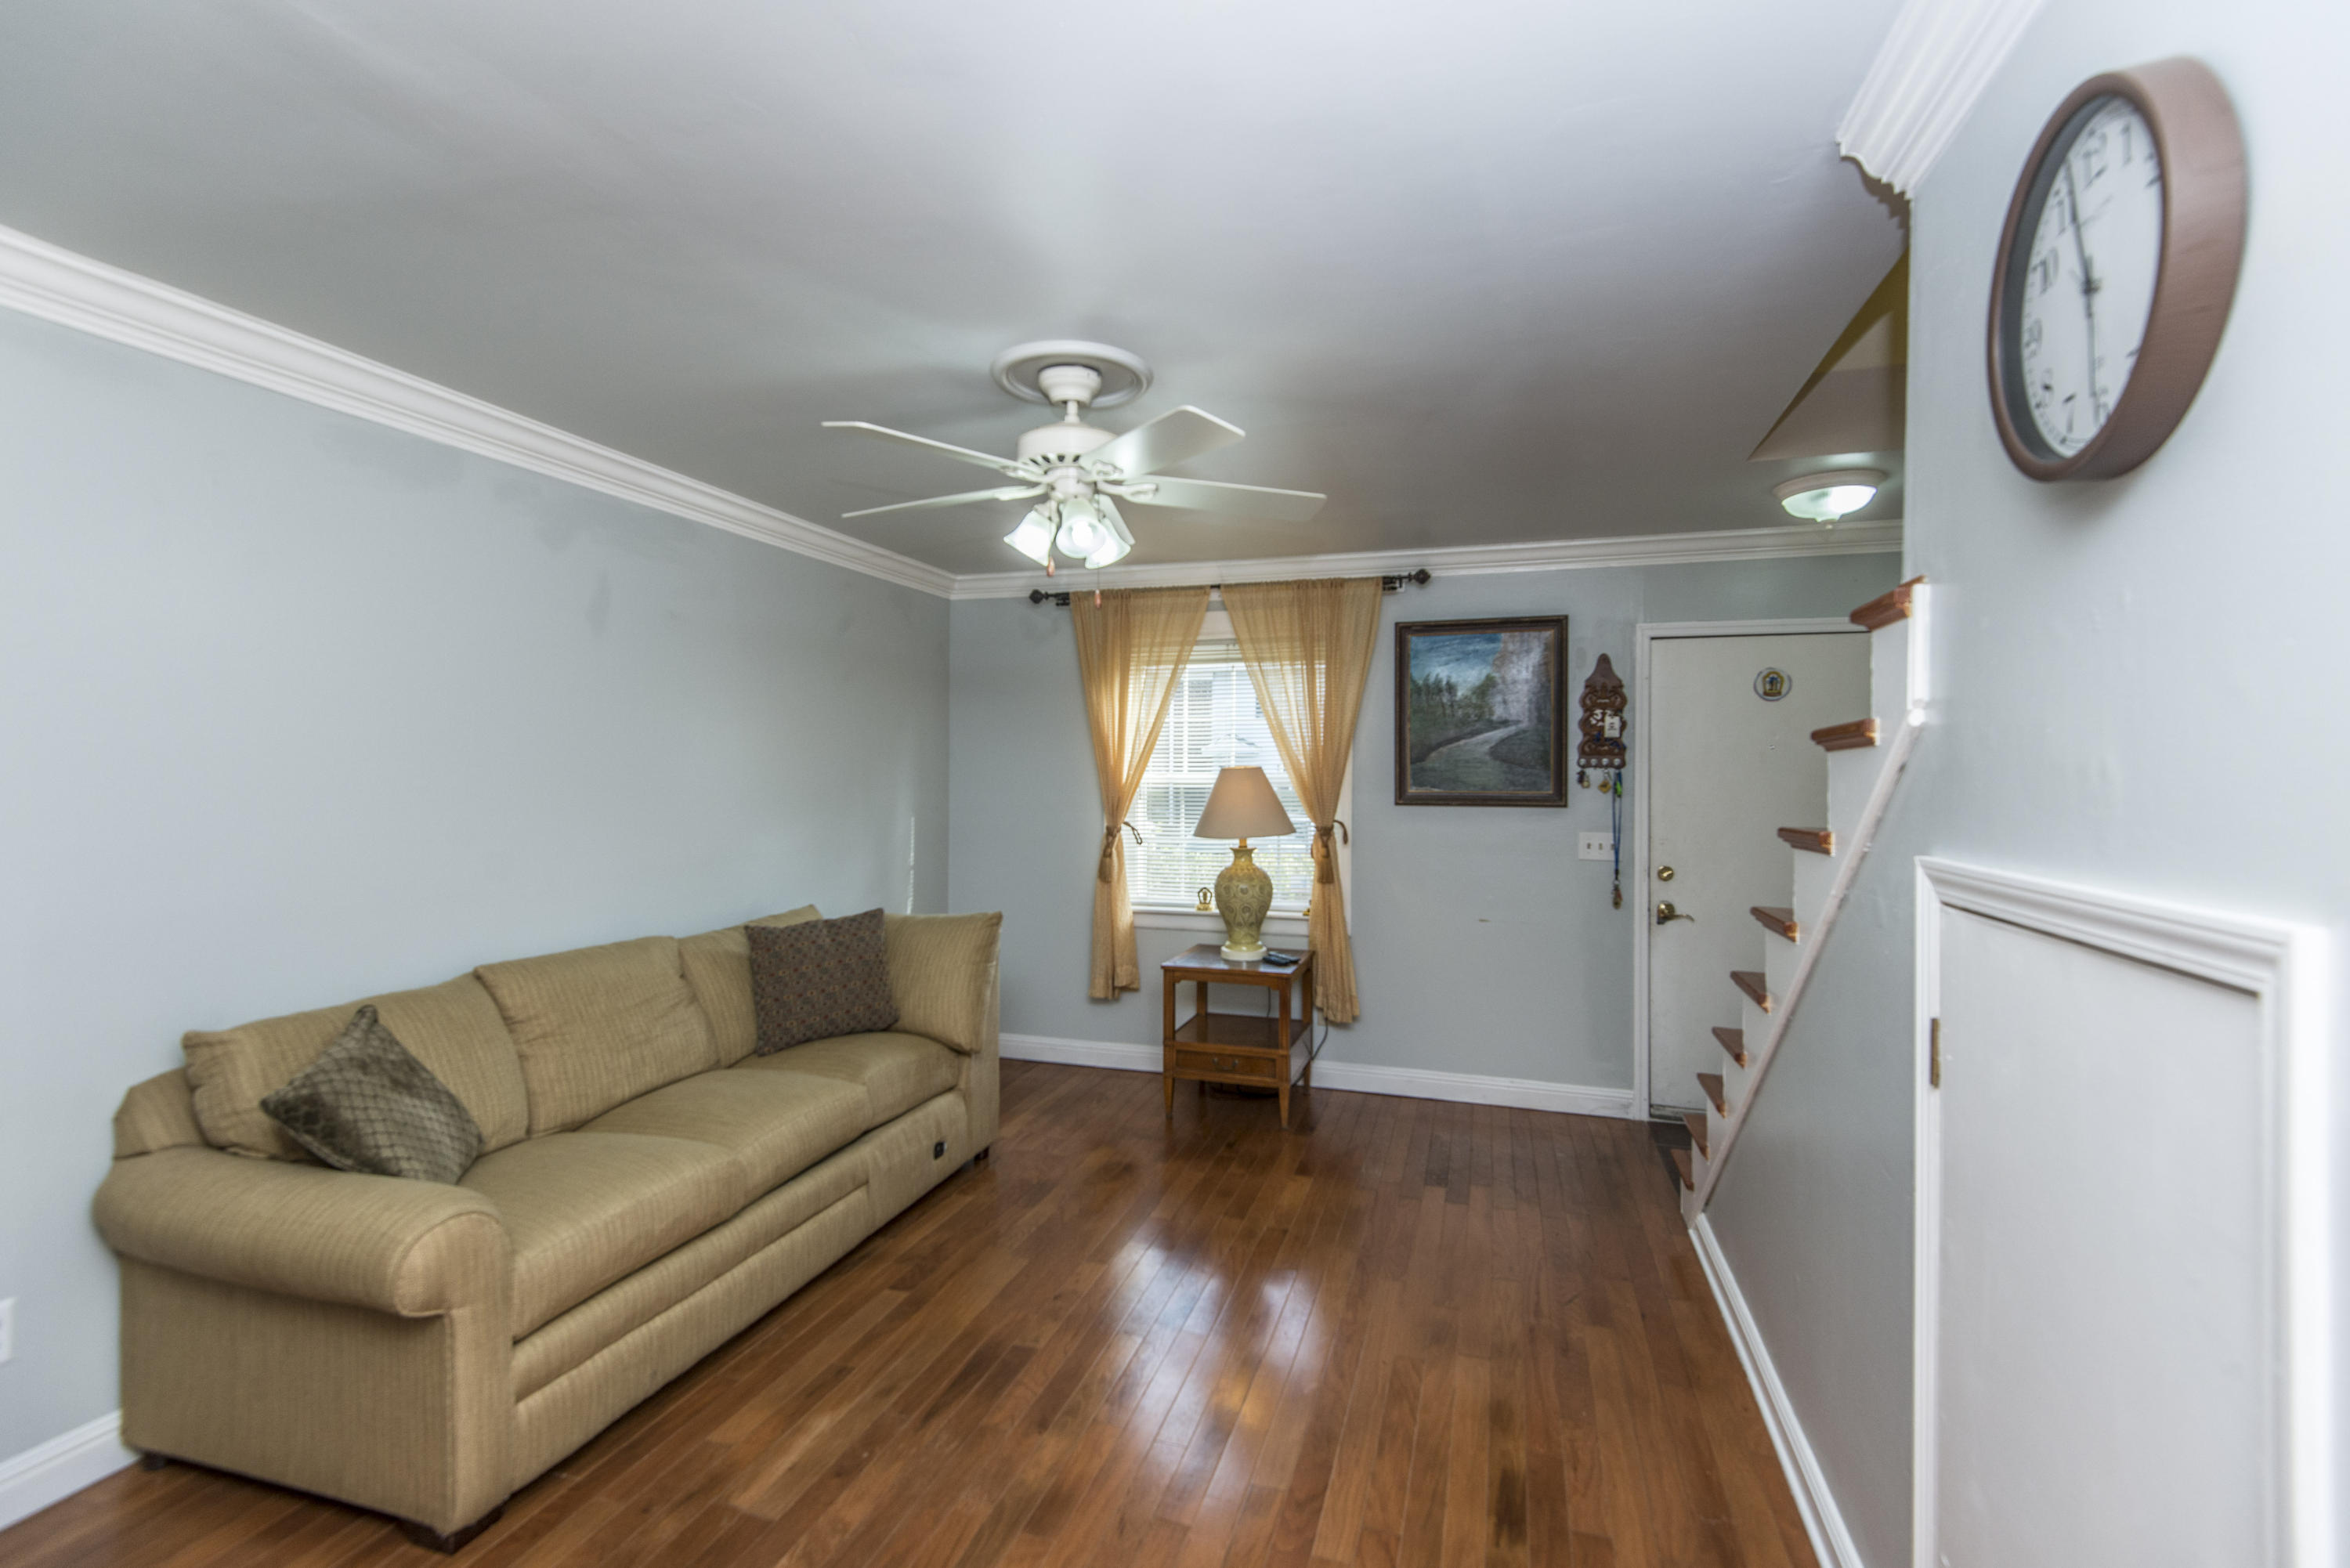 Rivers Point Row Homes For Sale - 21 Rivers Point Row, Charleston, SC - 8